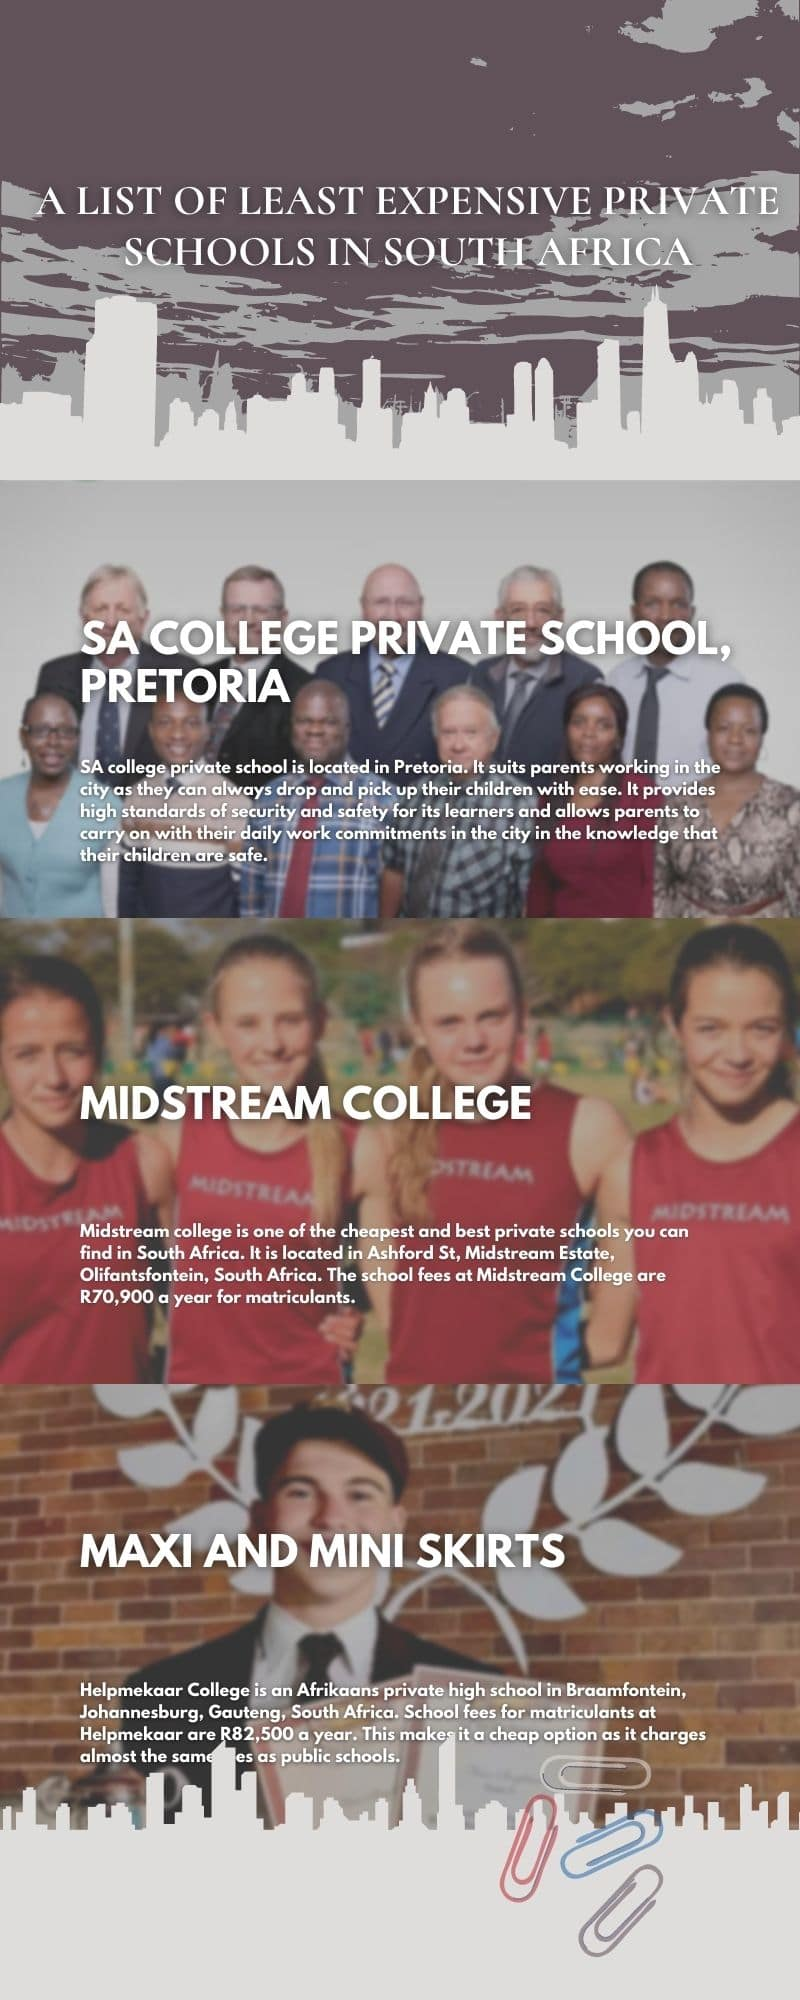 least expensive private schools in South Africa and their fees